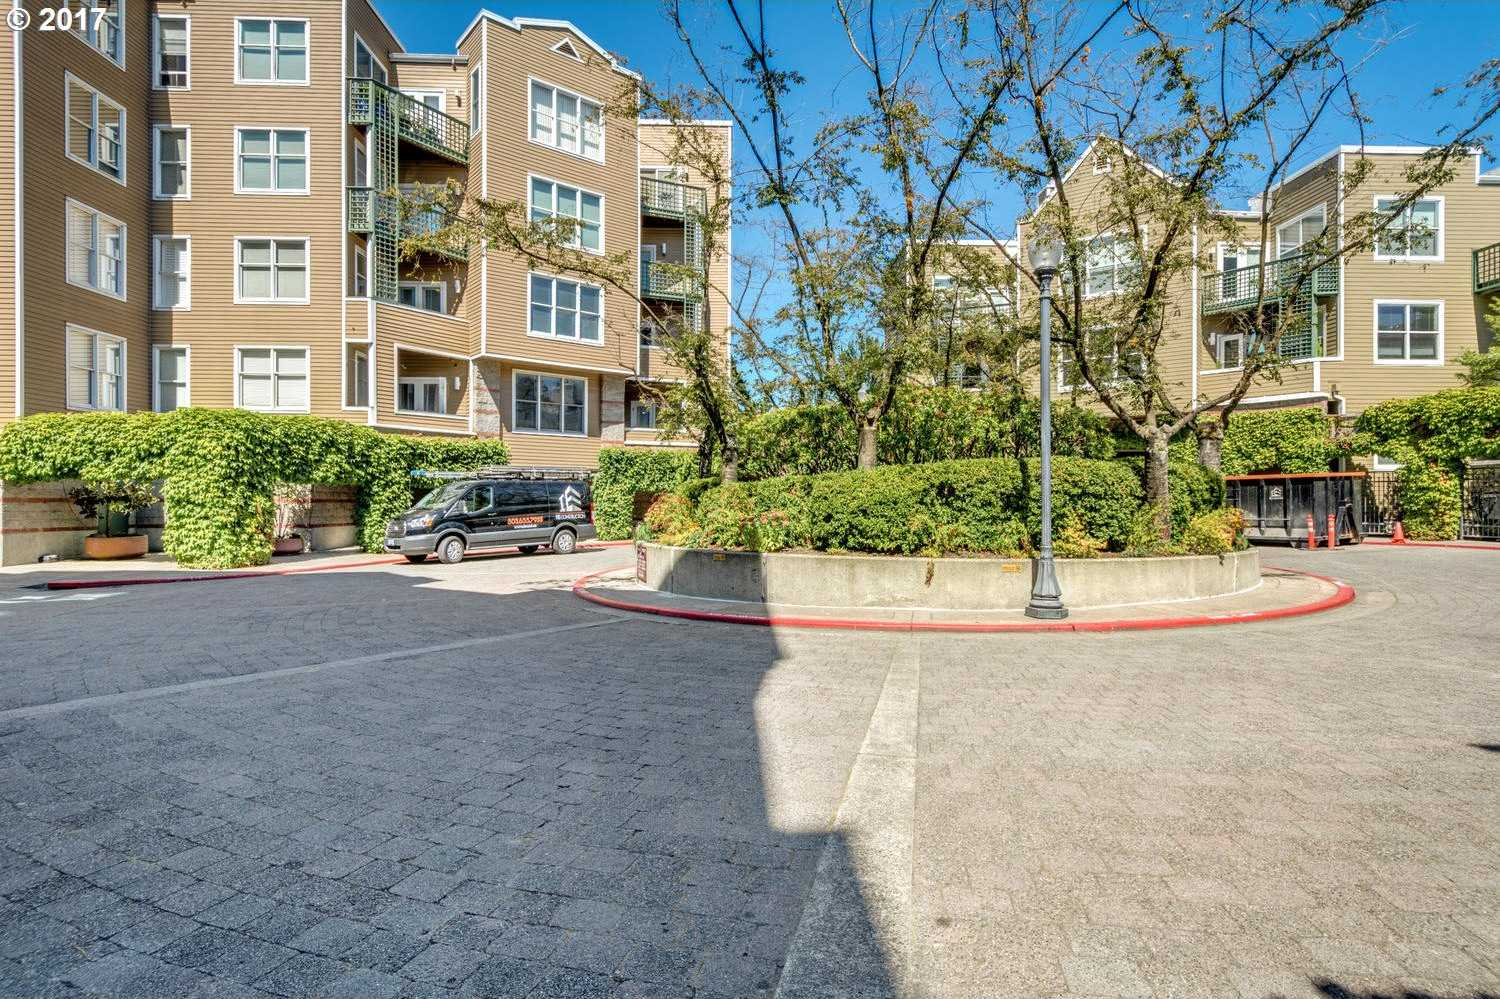 $395,000 - 1Br/1Ba -  for Sale in Riverplace, Downtown Pdx, Portland